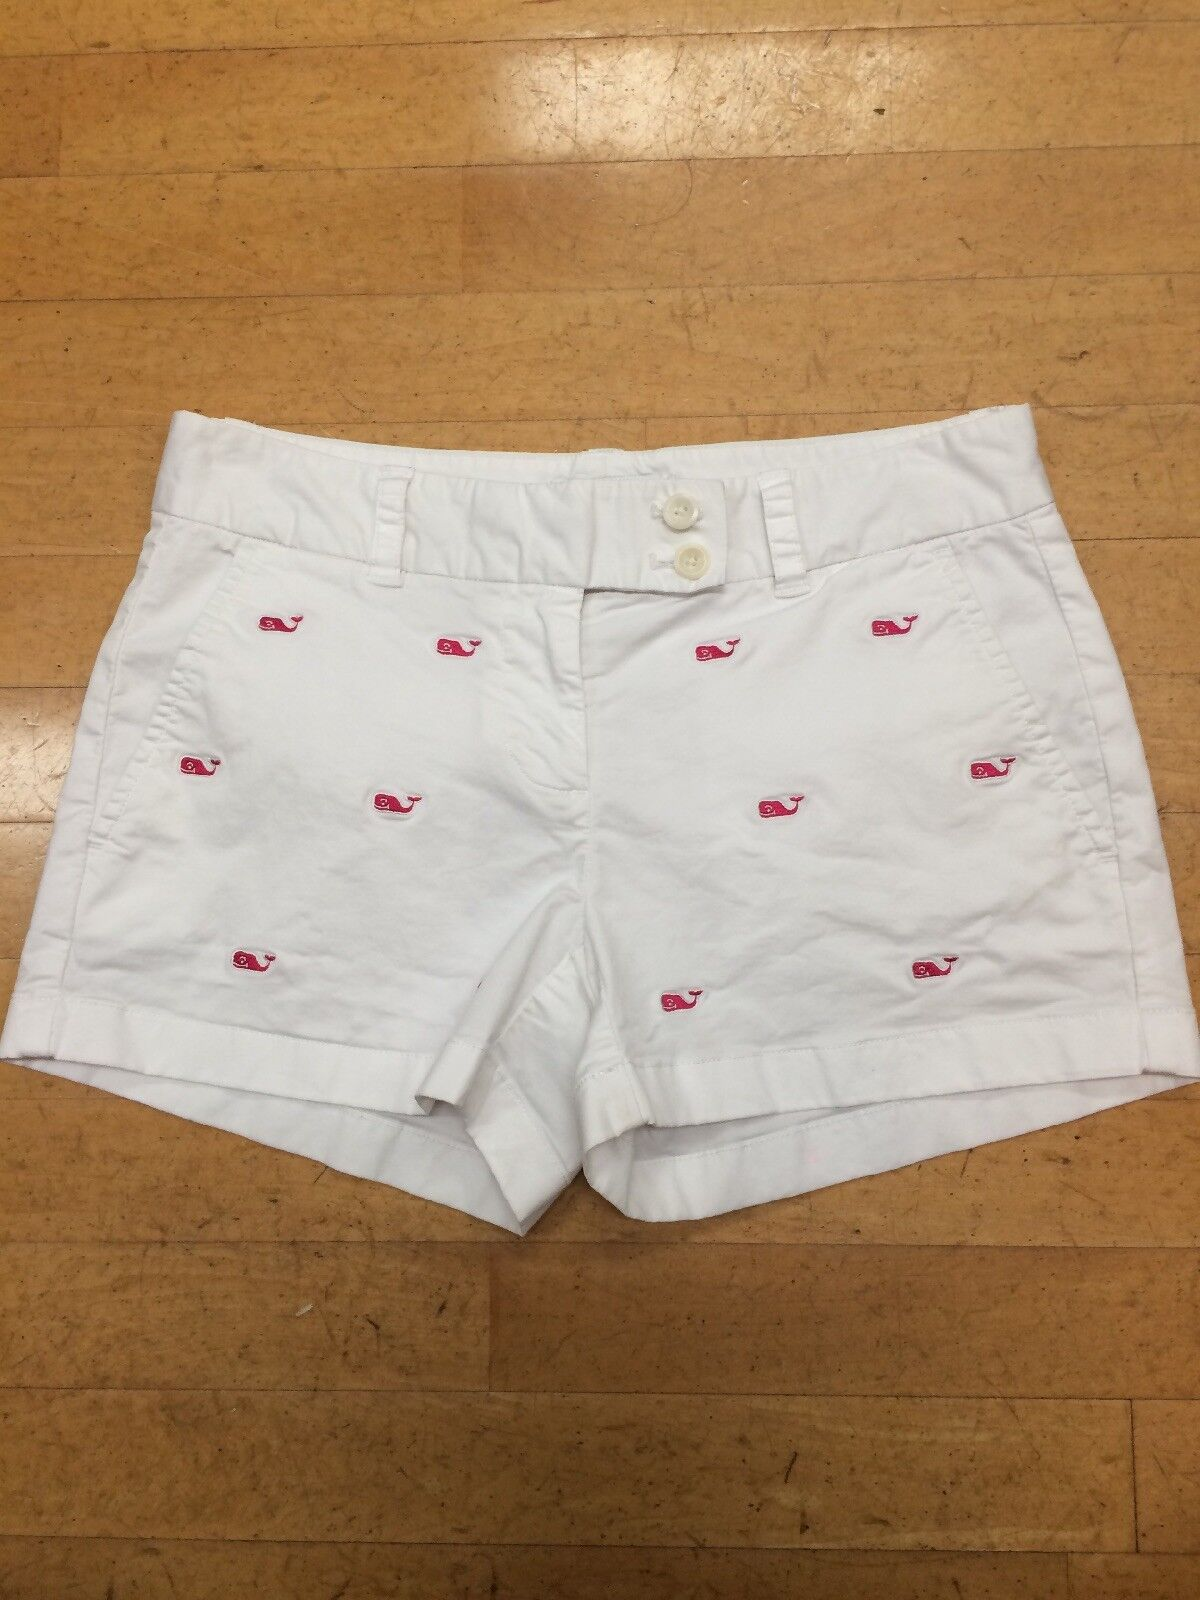 Vineyard Vines White Shorts With Pink Whales Size 0